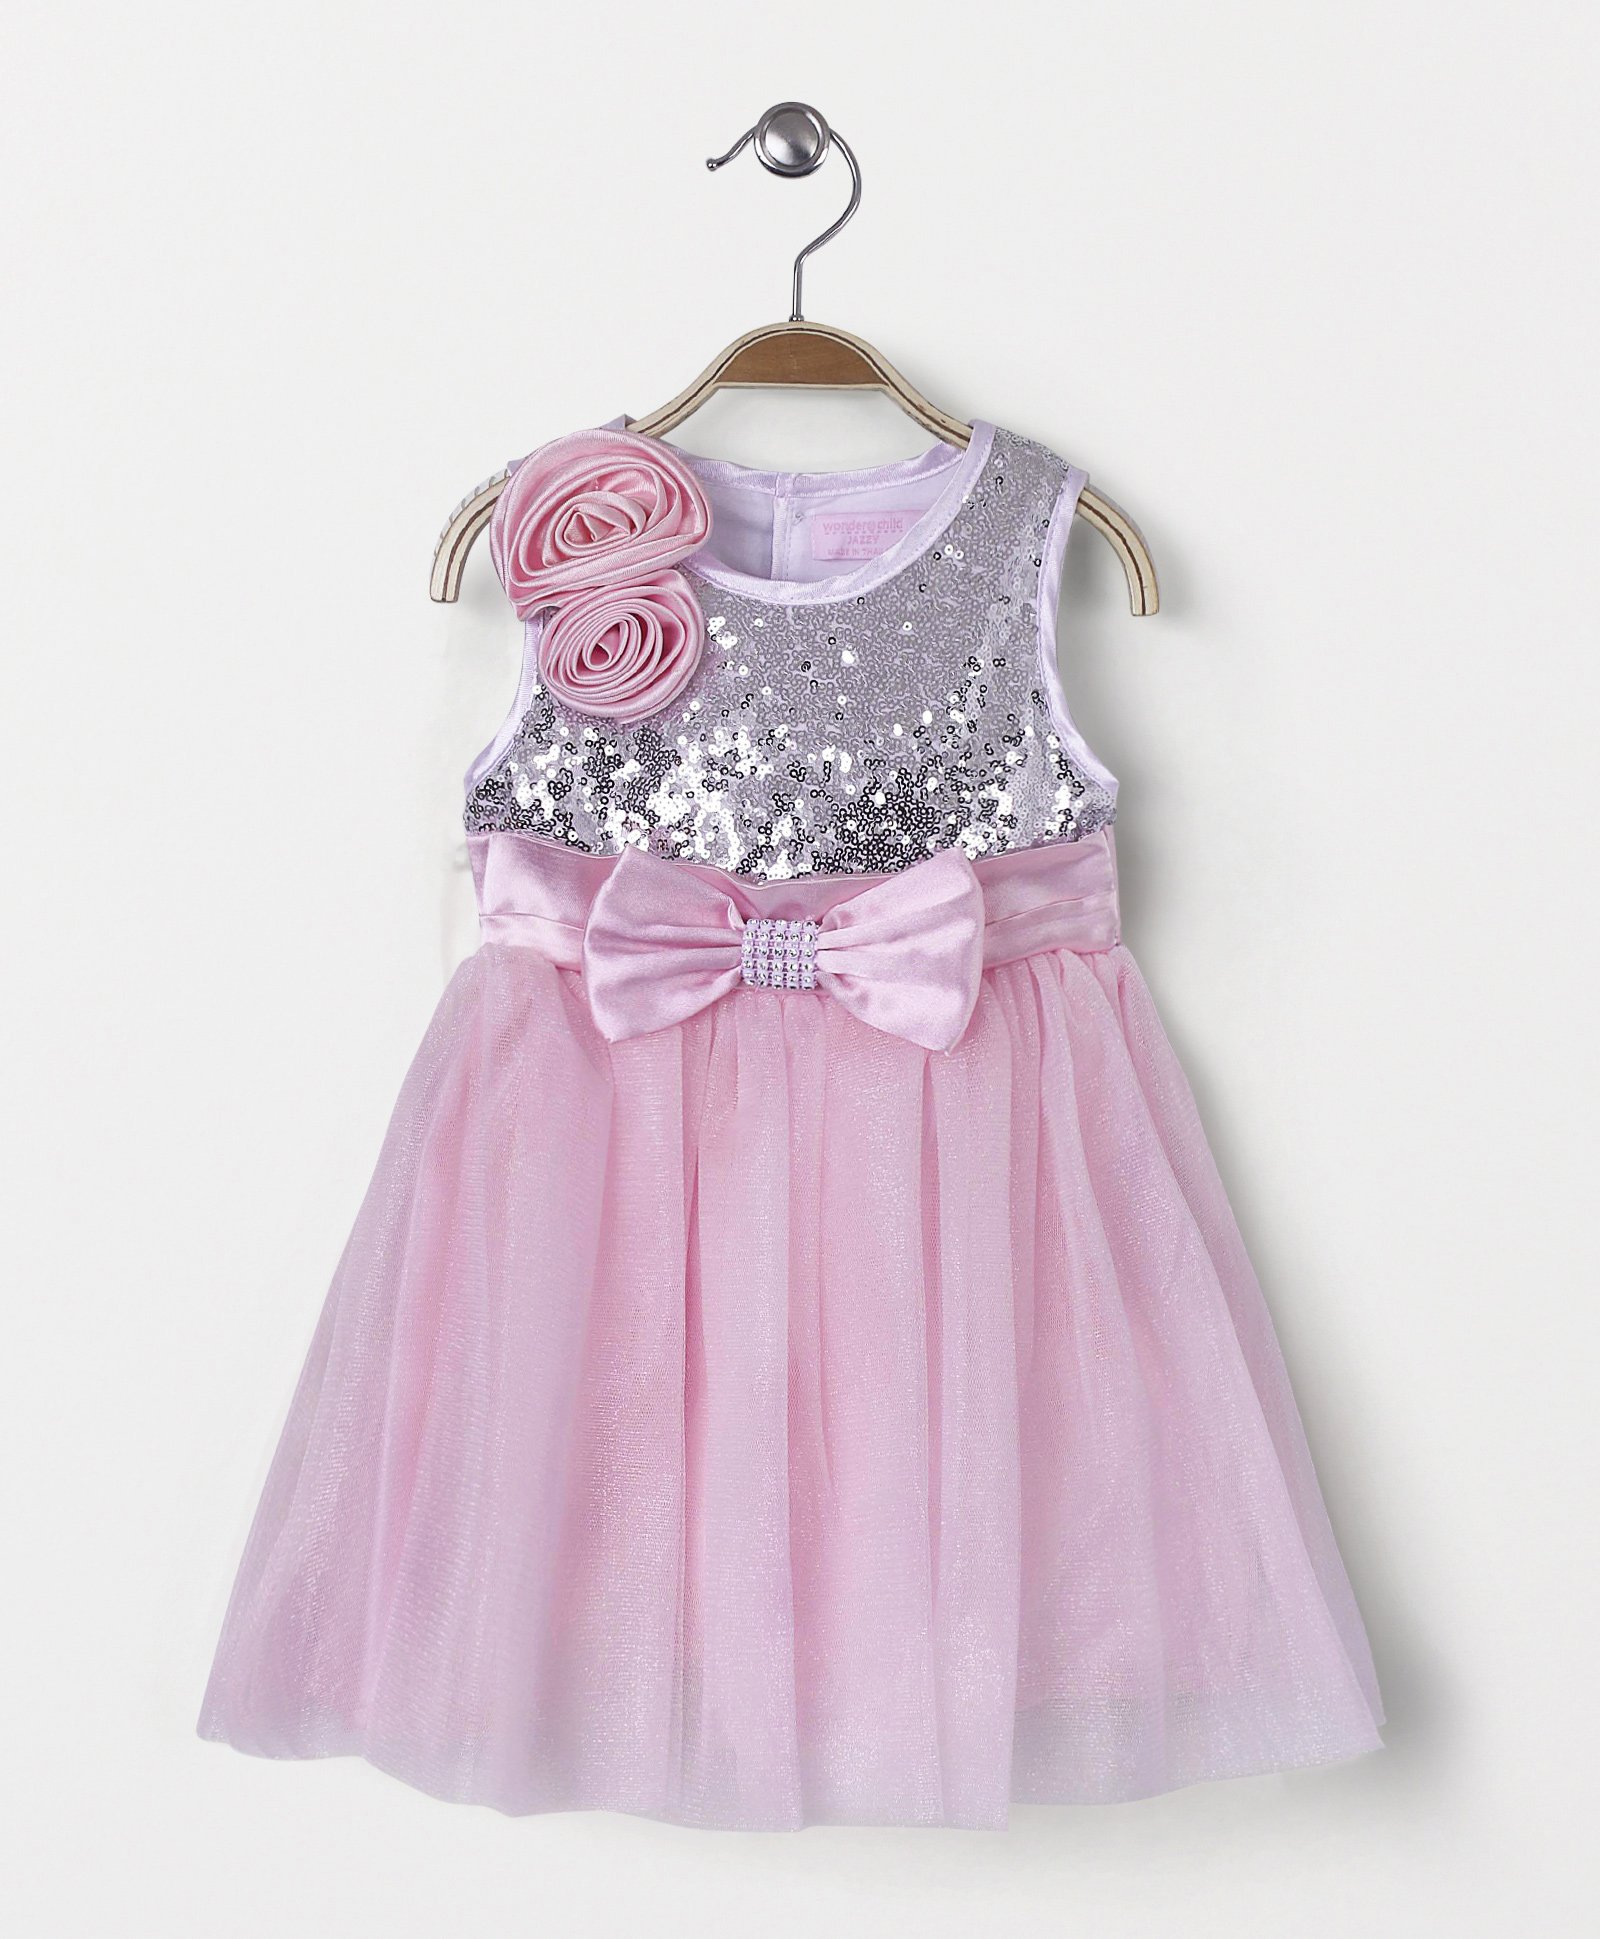 Buy Wonderchild Party Wear Dress With Bow Pink For Girls 6 12